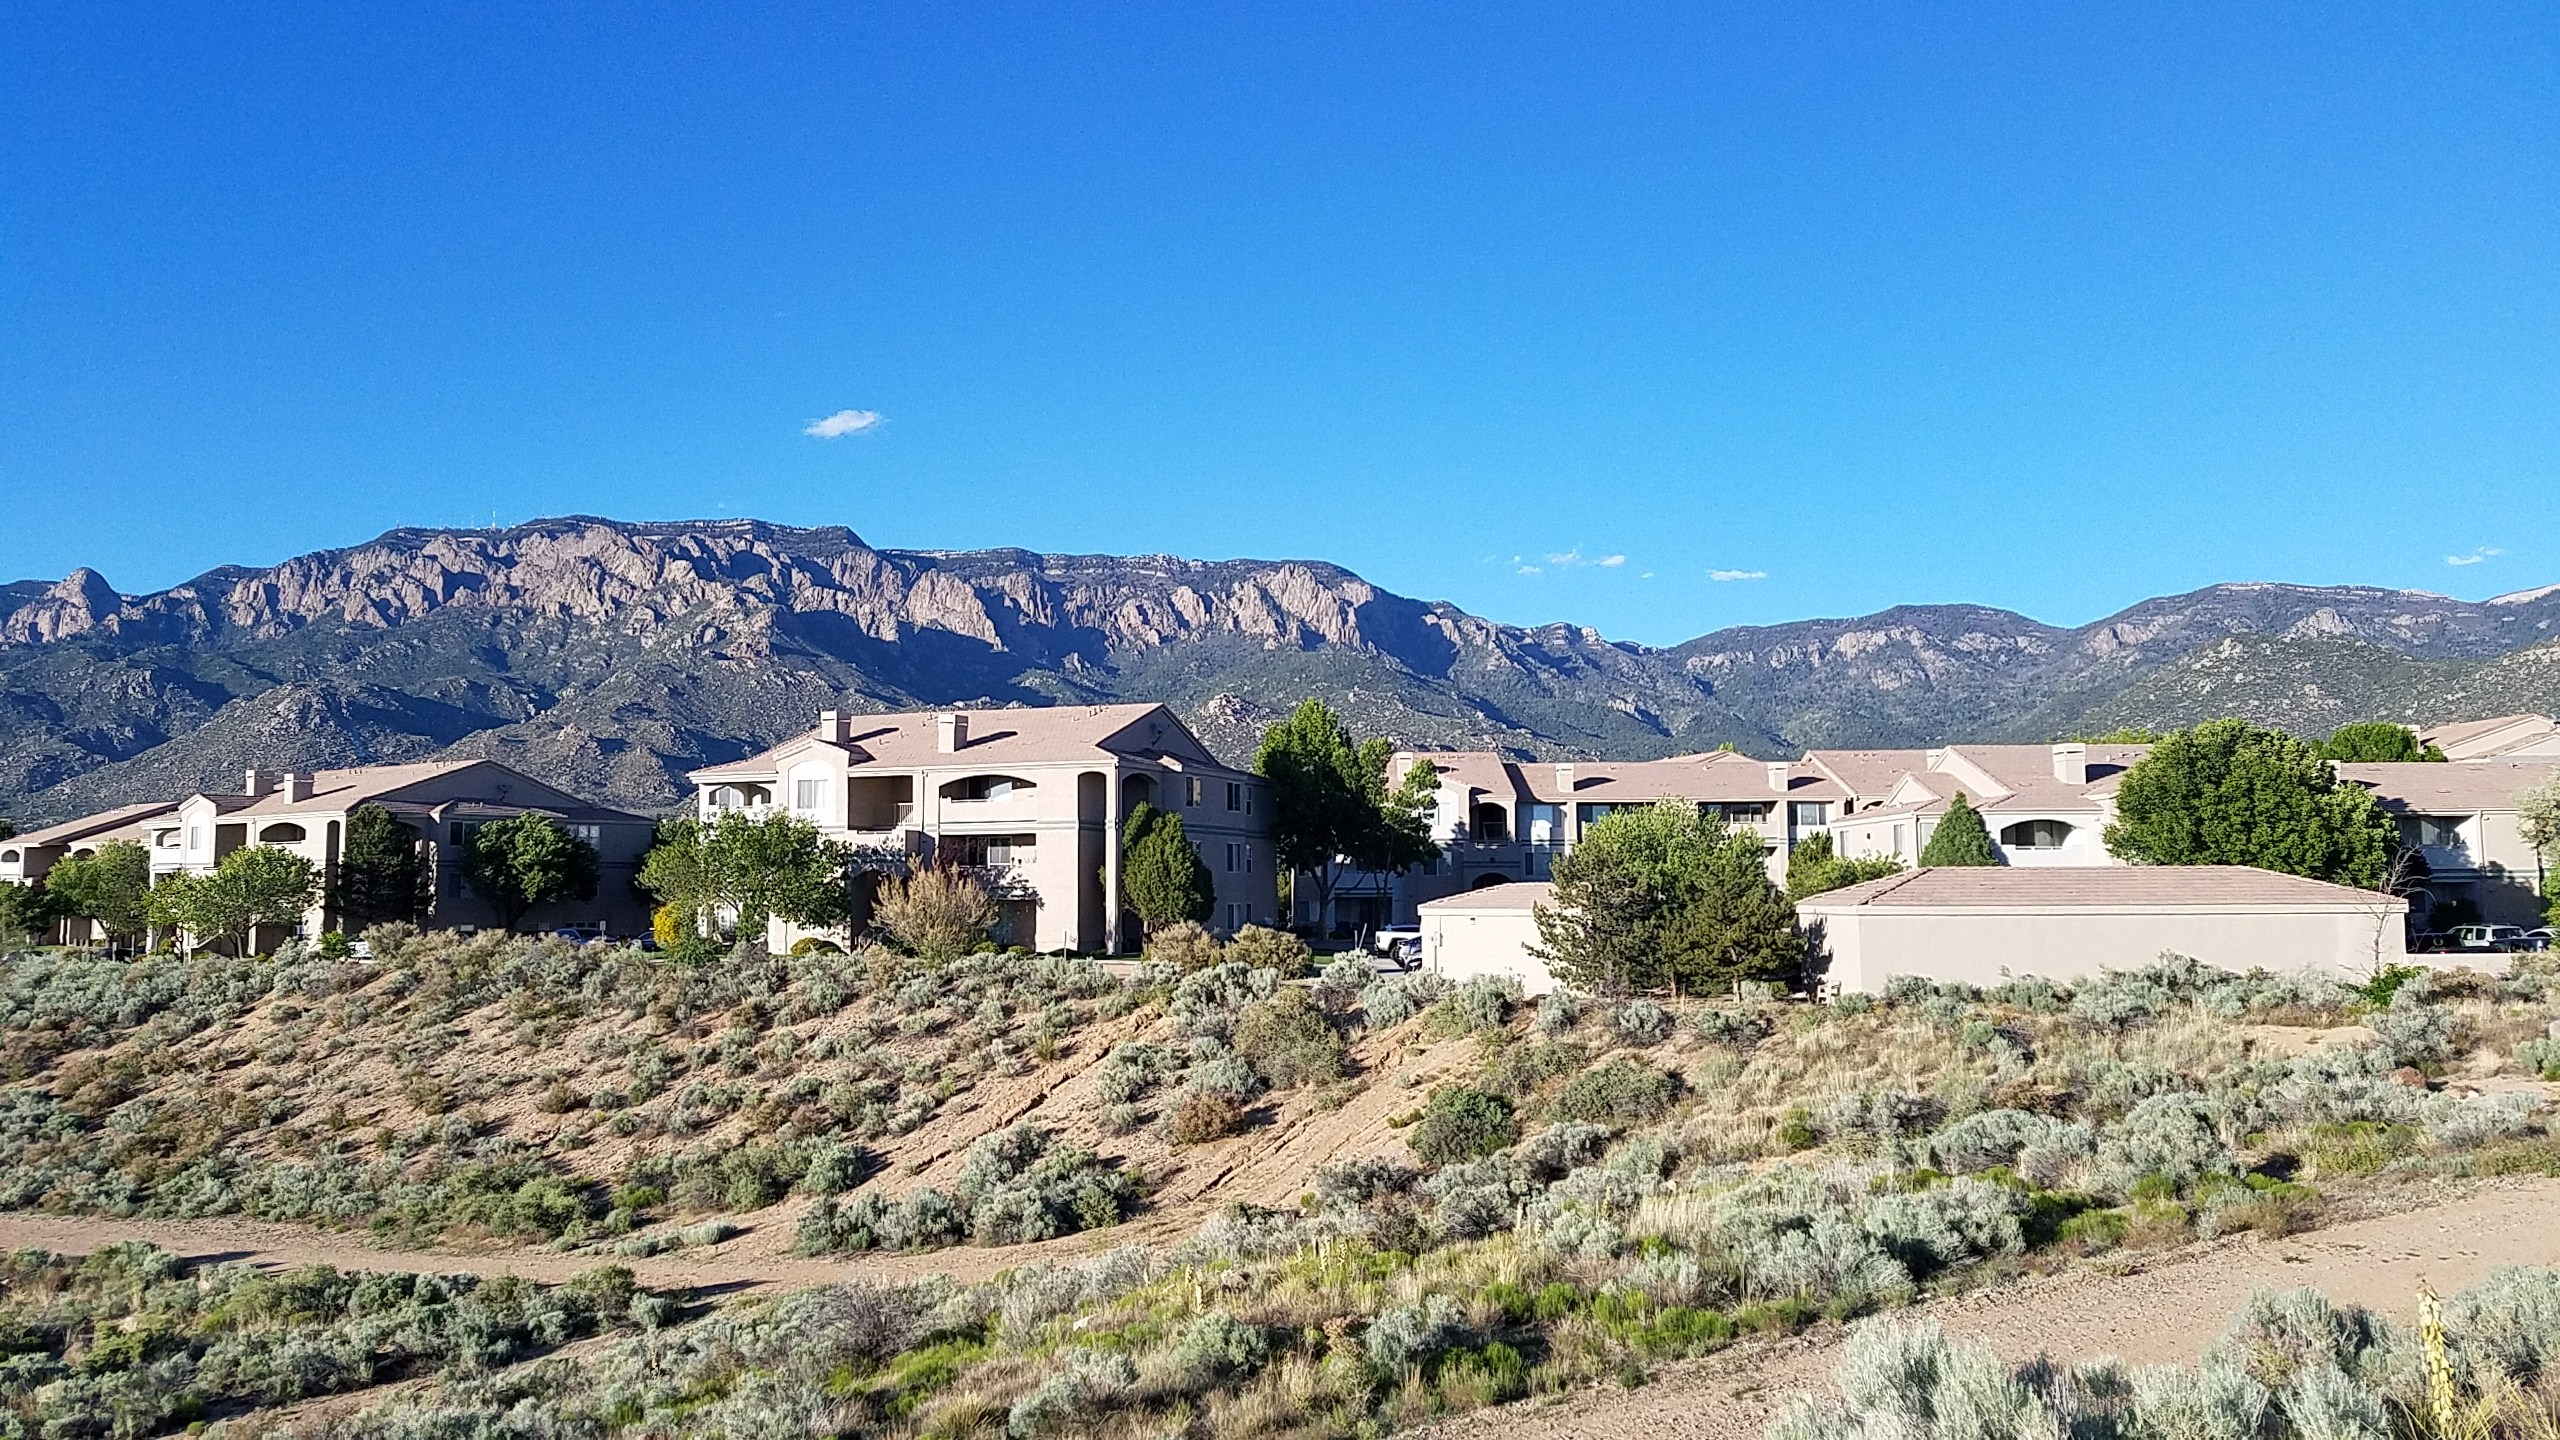 Apartment building in front of Sandia Mountains